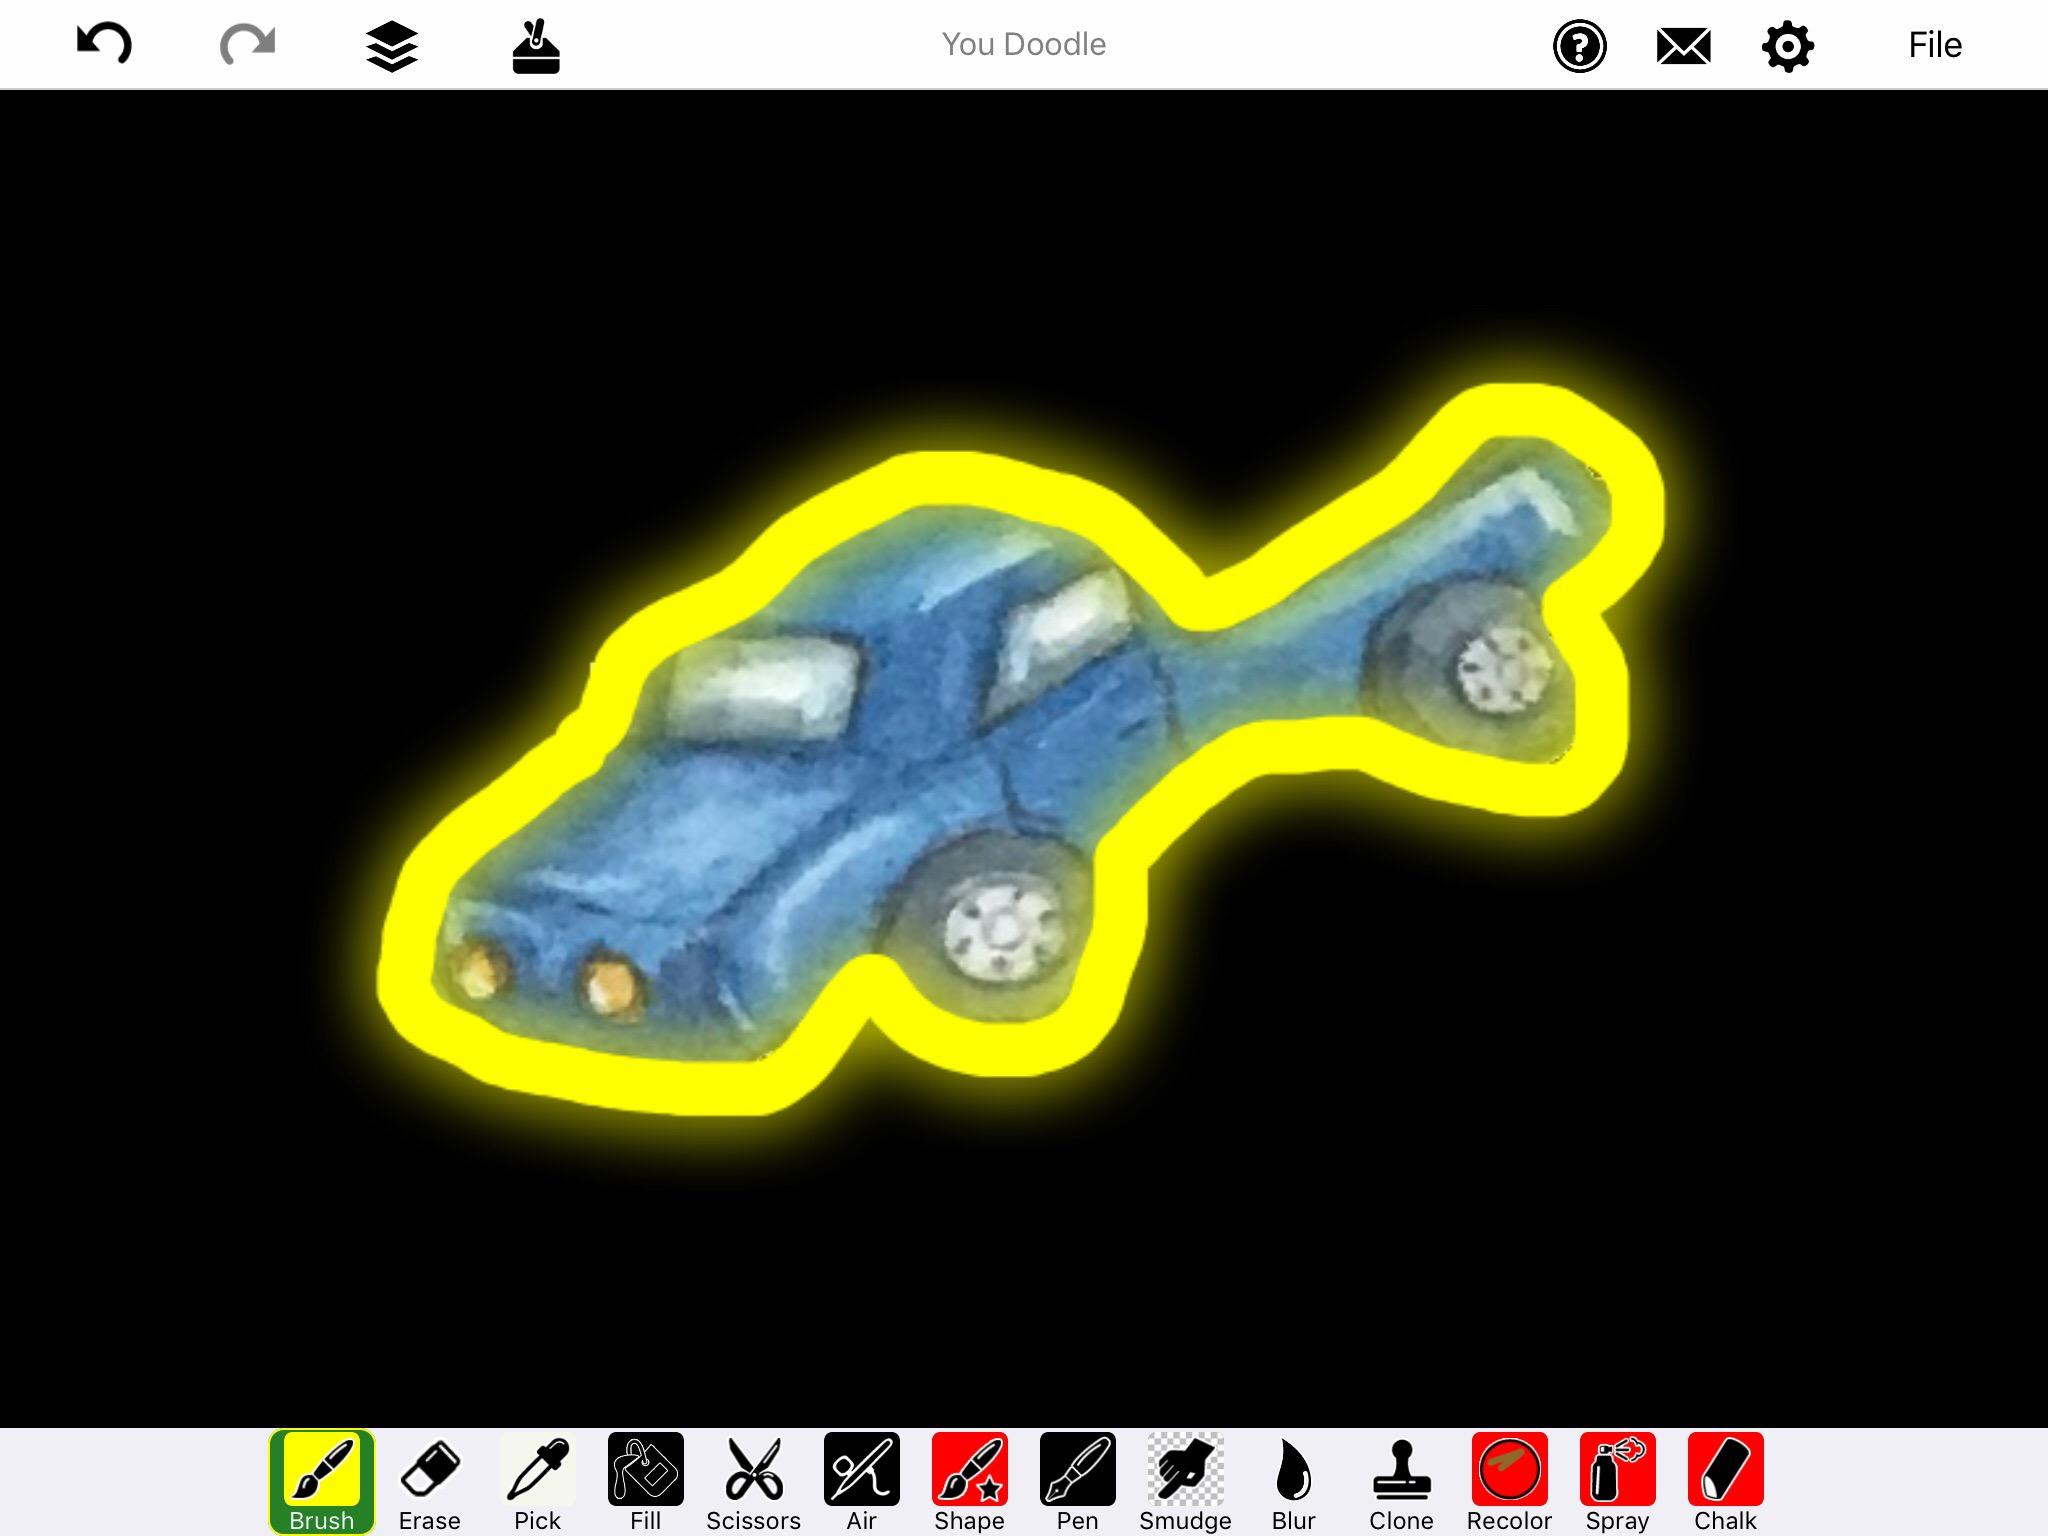 Screenshot of You Doodle App displaying blue truck with maximum yellow glow outline on black background